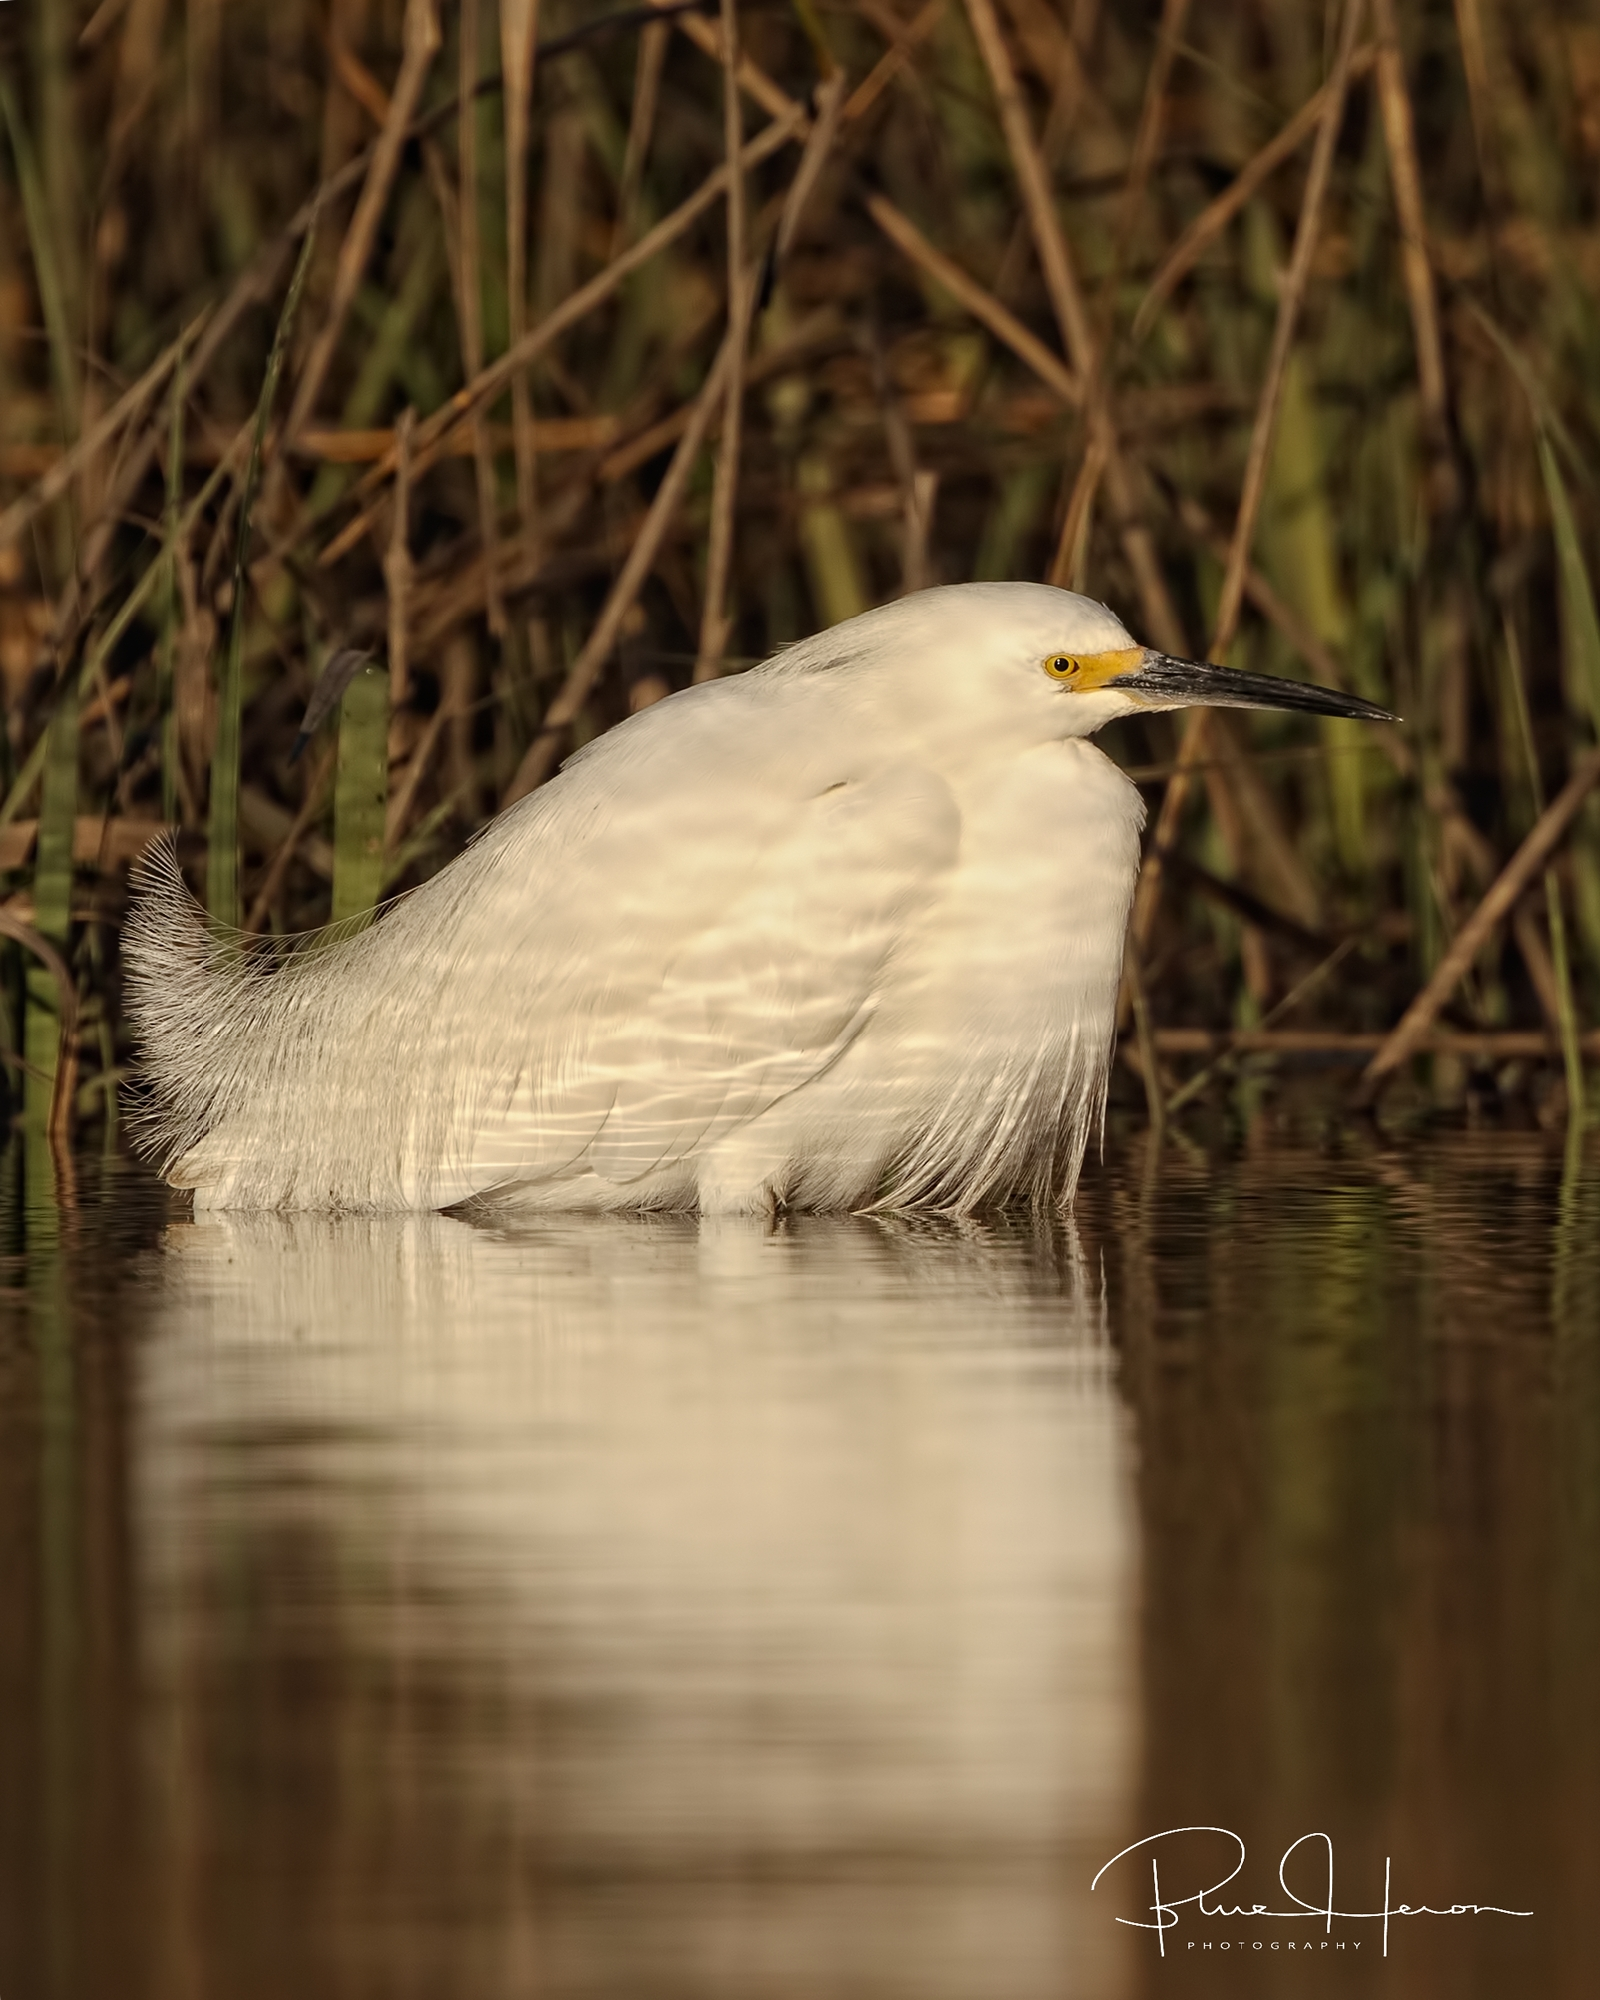 The egrets are normally very communal and friendly